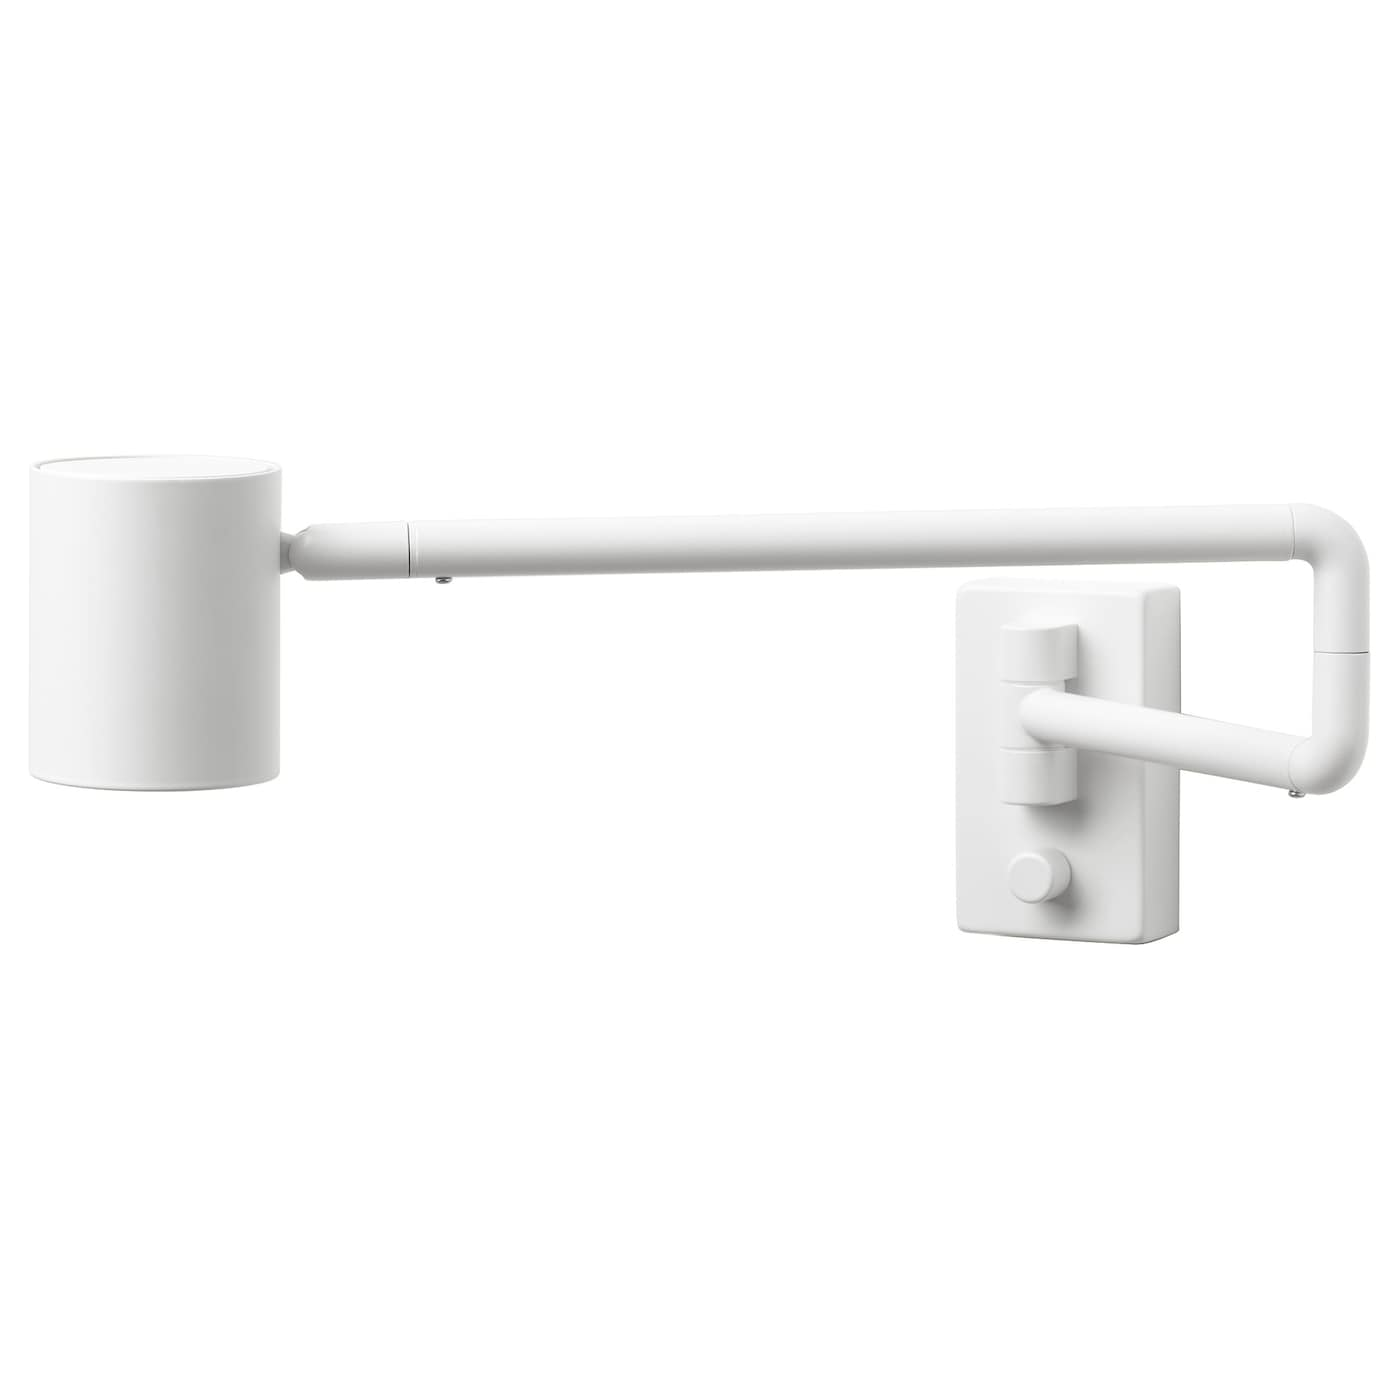 IKEA NYMÅNE wall lamp w swing arm, wired-in Provides directional light, great for reading.